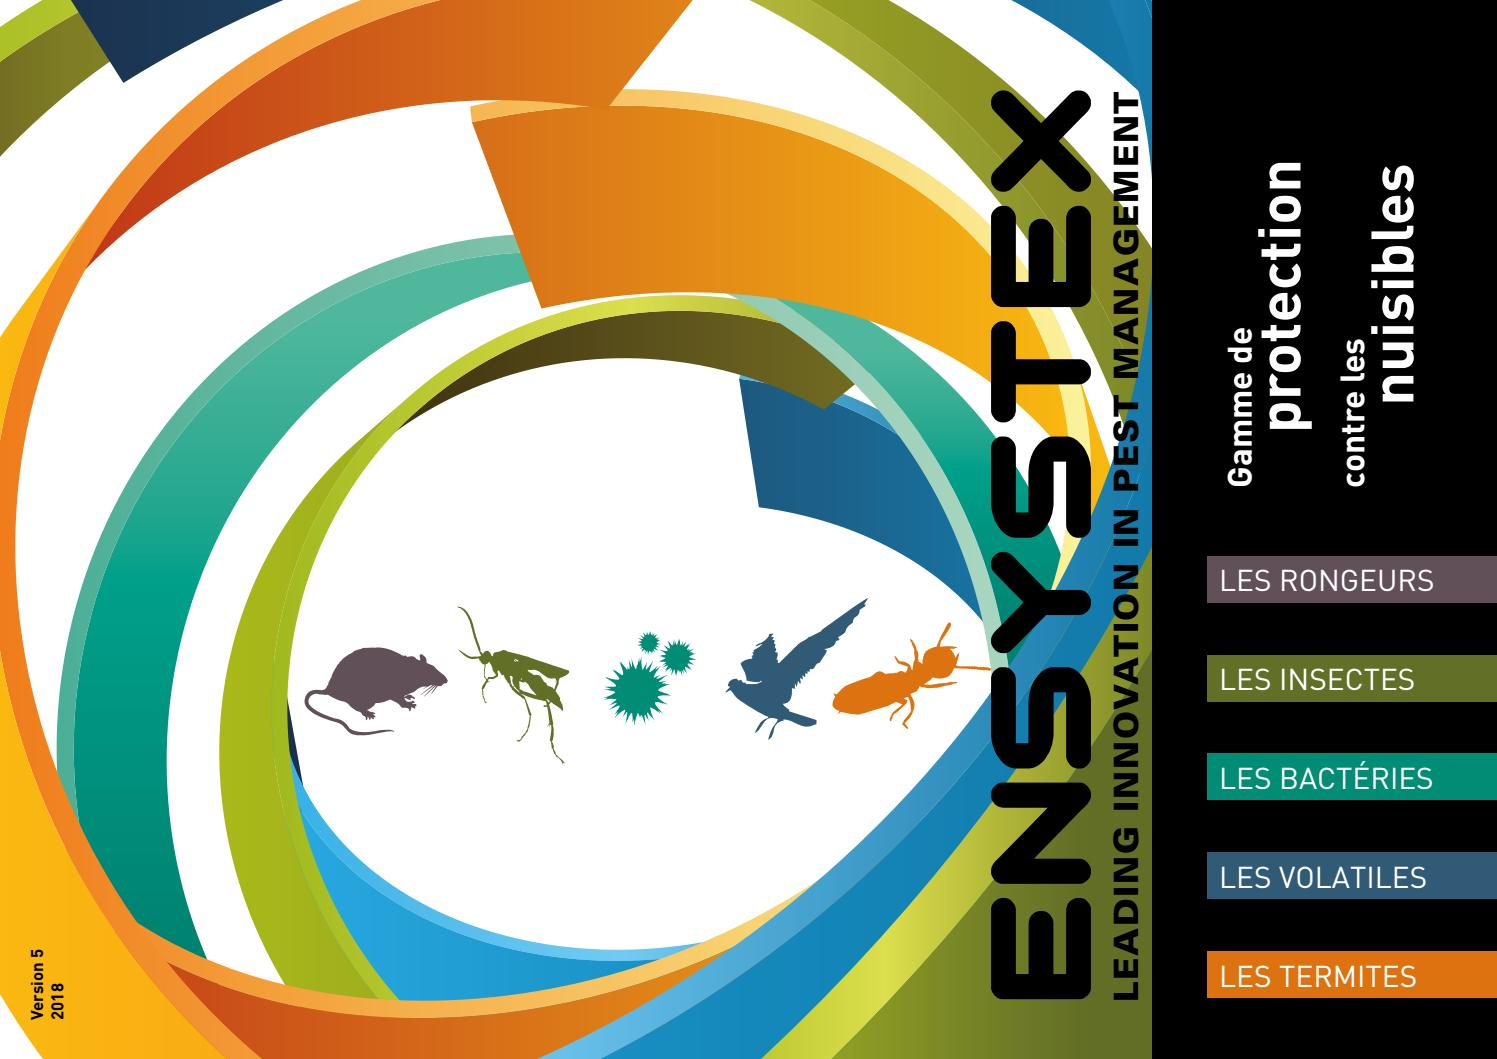 Enseigne De Cuisine Catalogue Ensystex Europe 2018 By Ensystex Europe Issuu